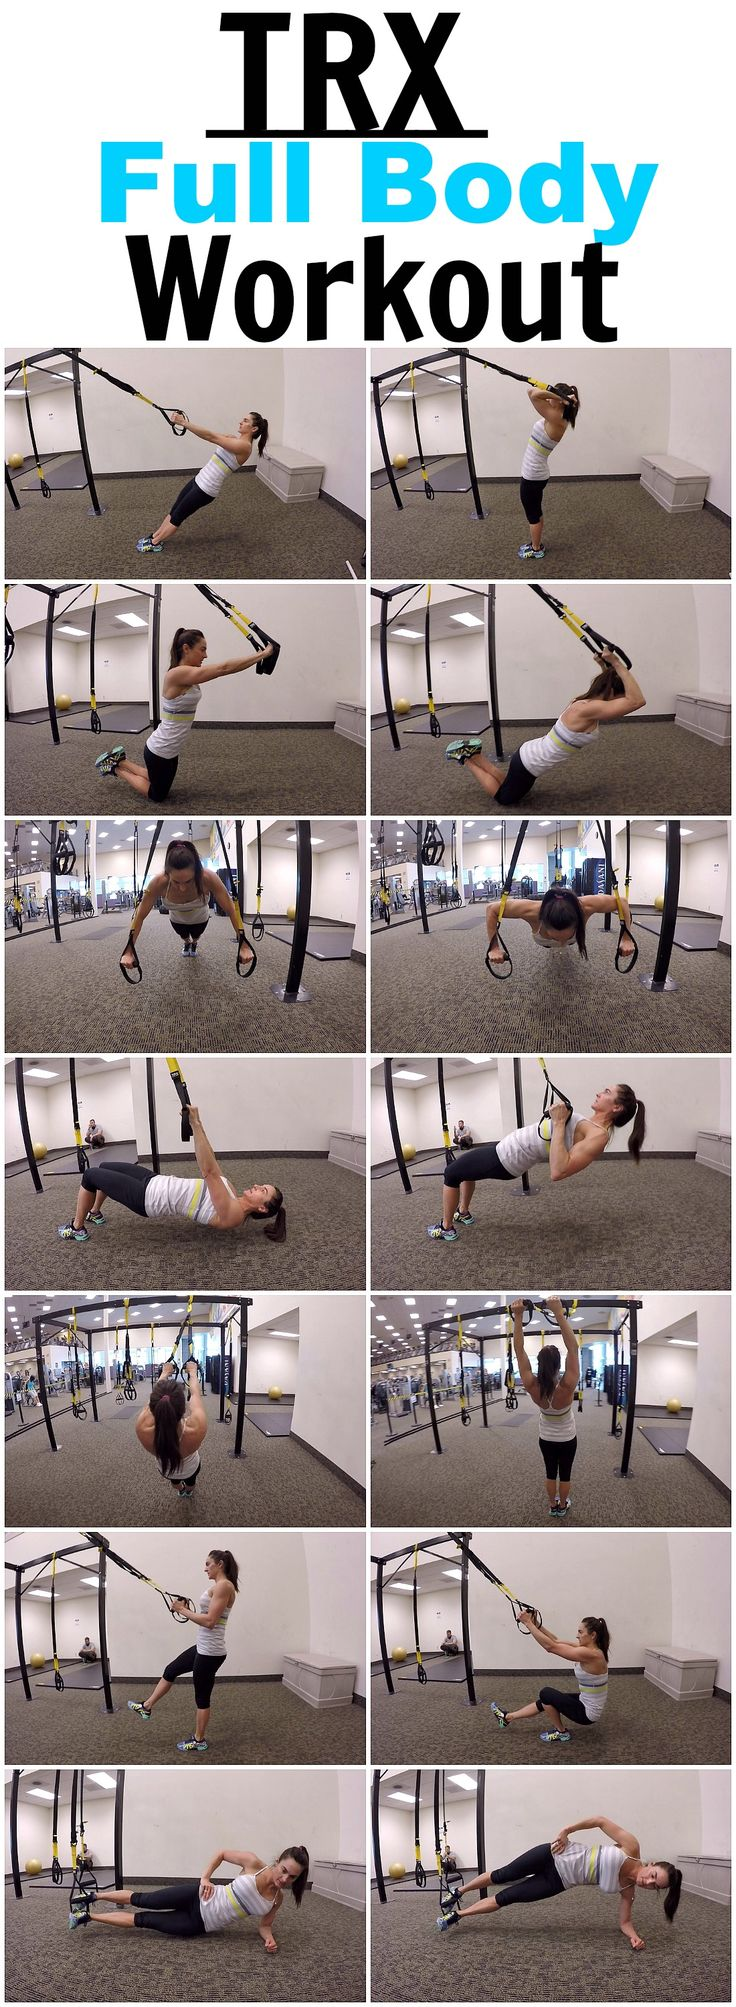 image about Printable Trx Workout titled Exercise Commitment : 7 Physical exercises for a complete entire body TRX work out